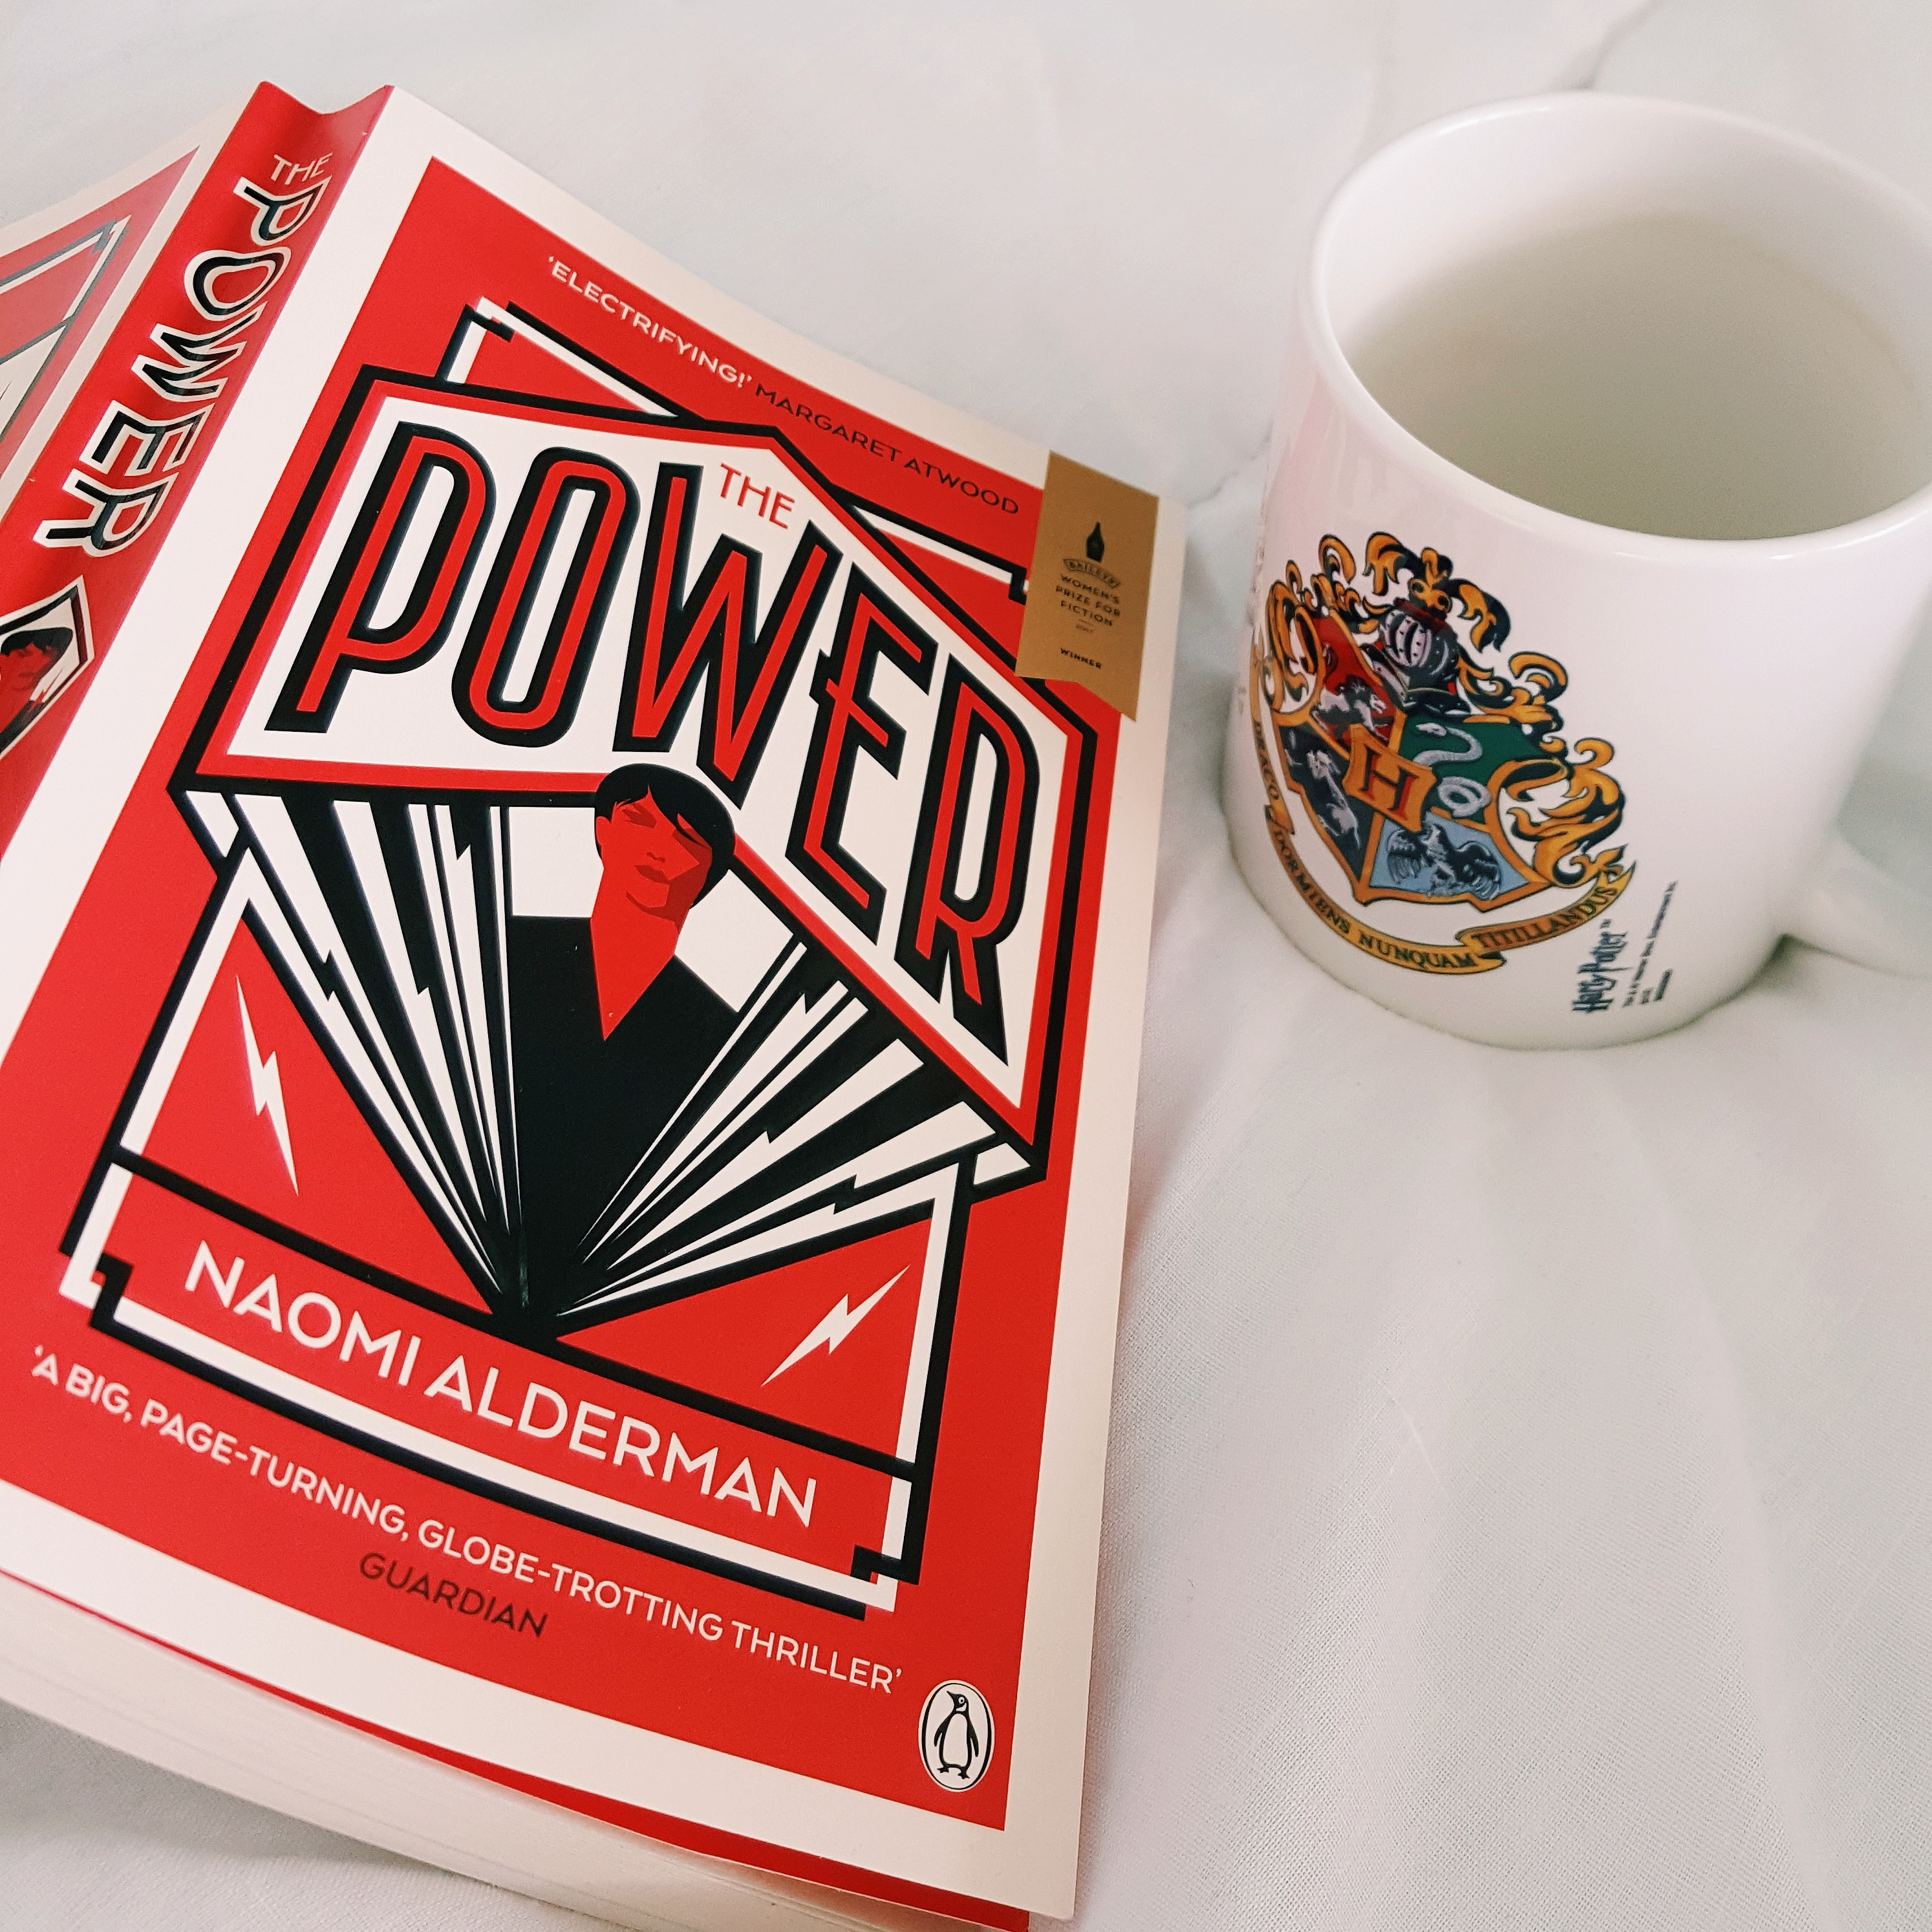 Read my review of The Power by Naomi Alderman on theveryhungrybookworm.com now!